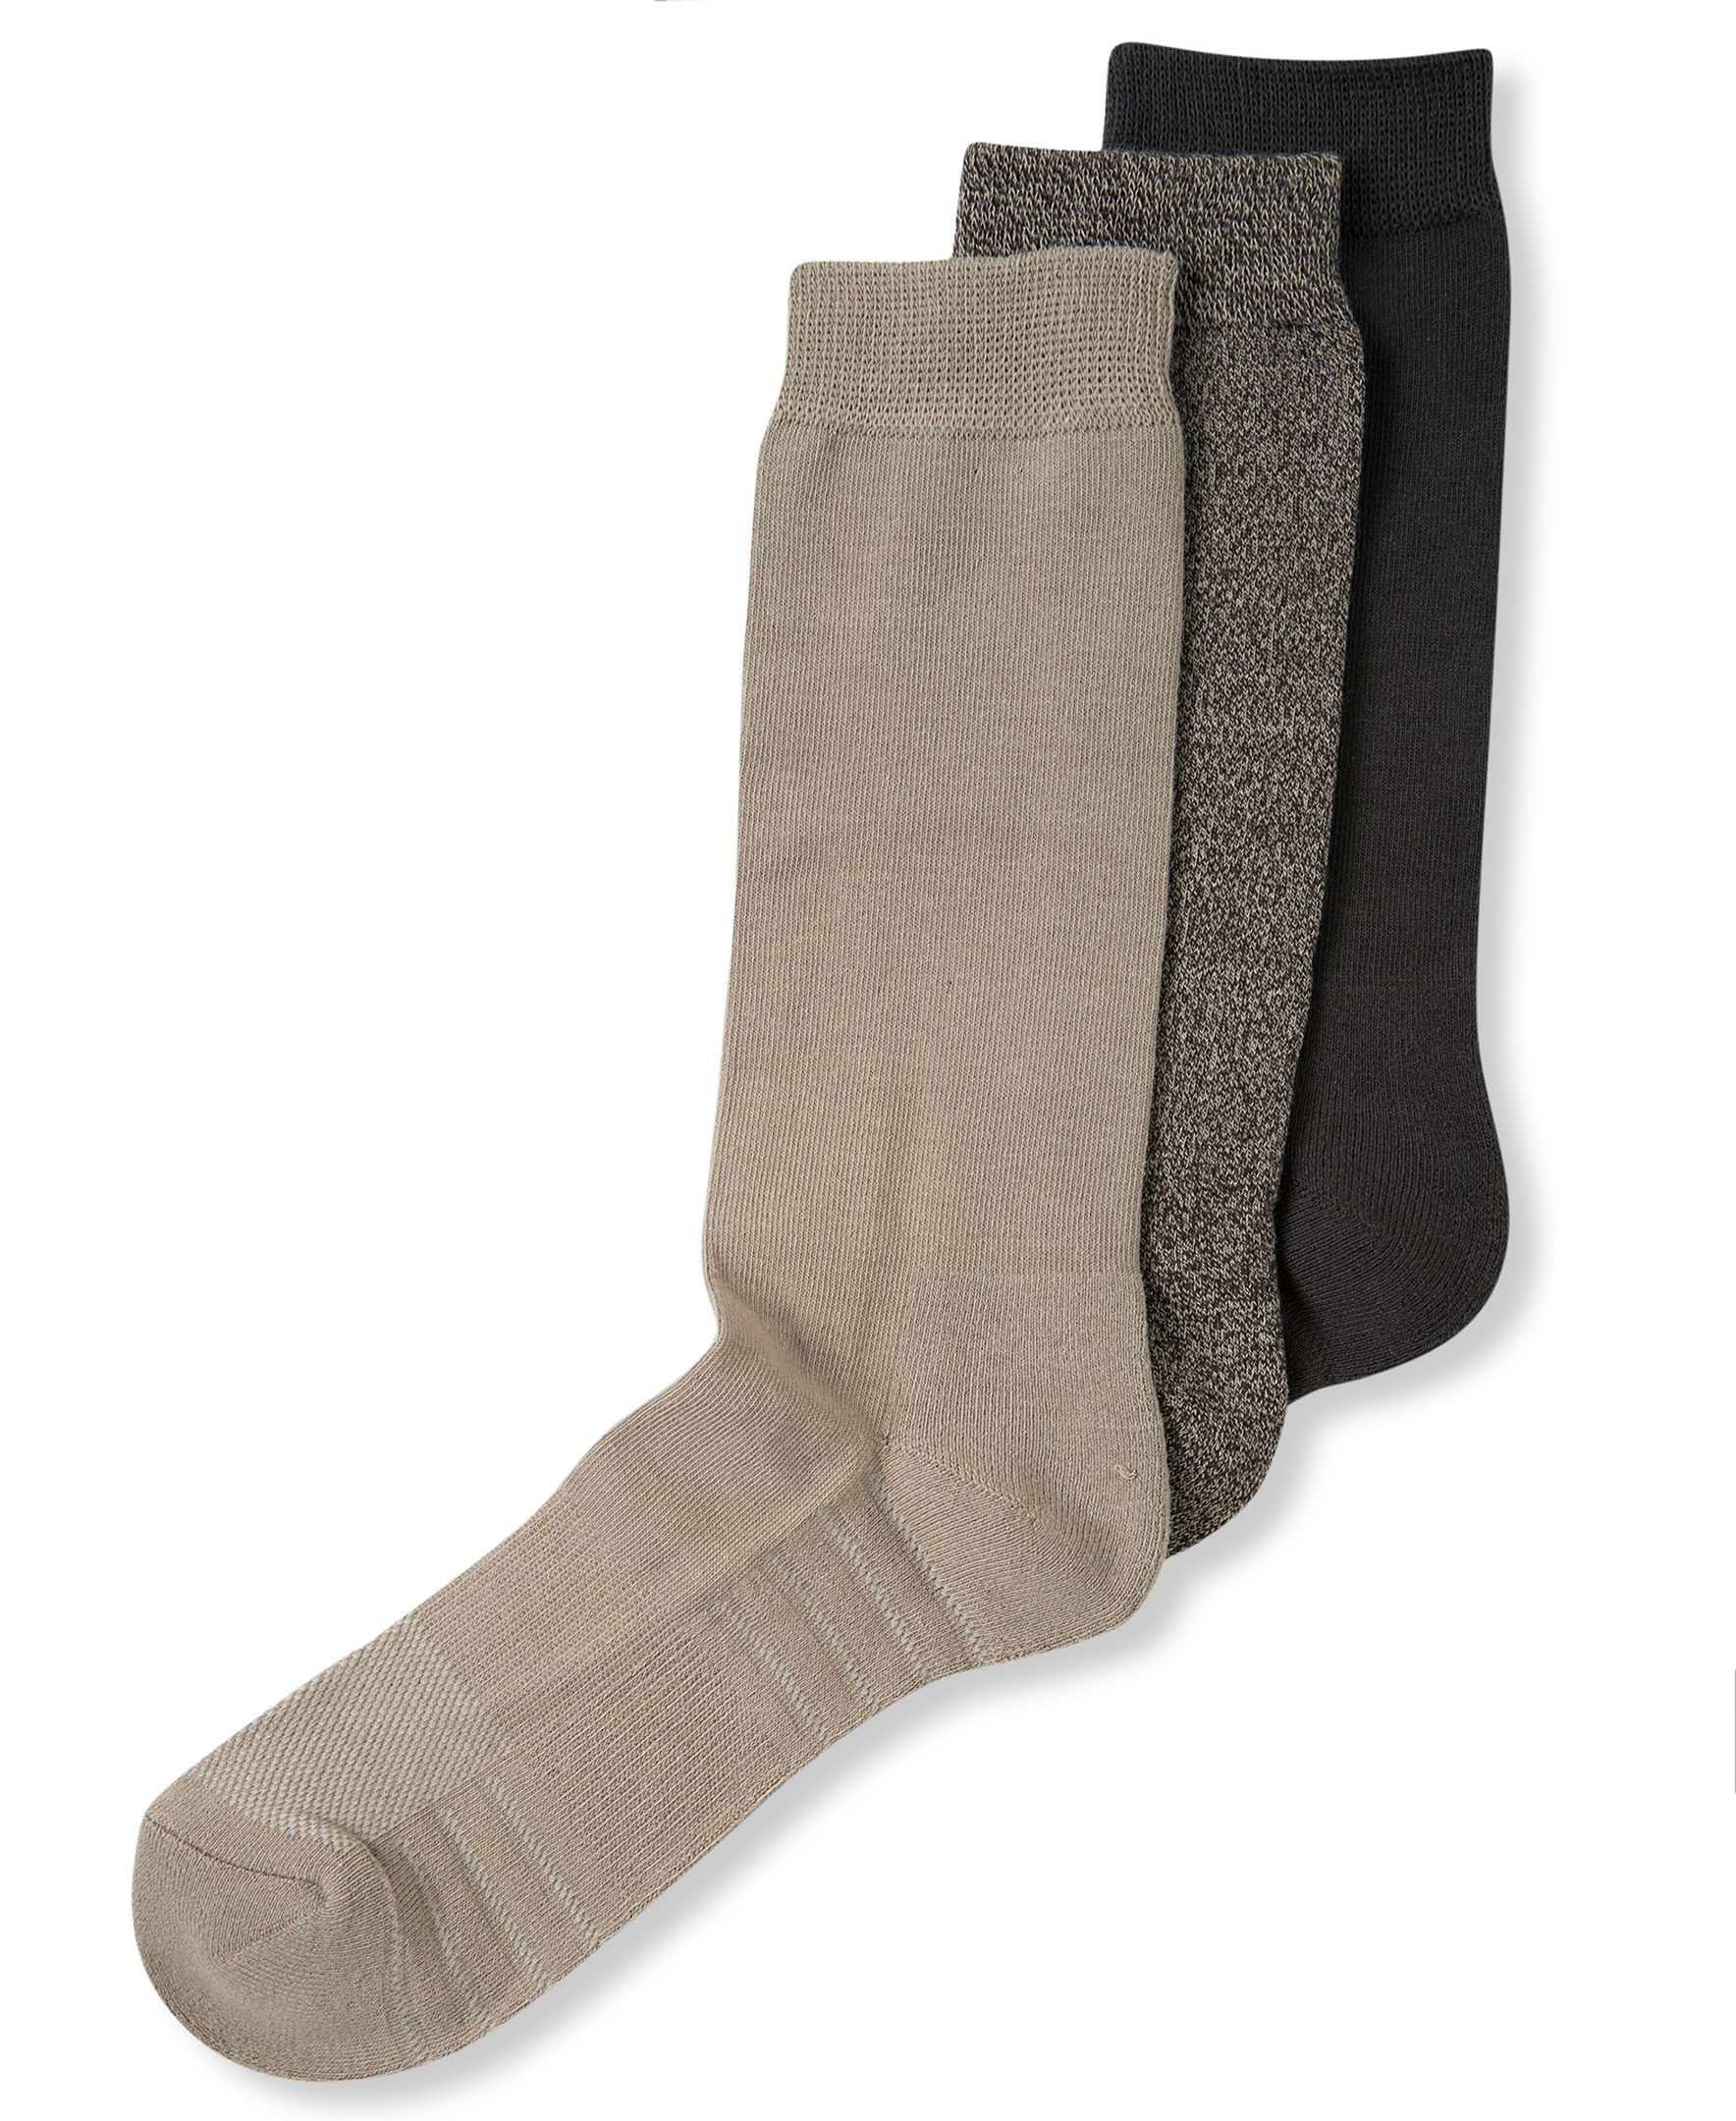 Perry Ellis Men's Socks, C-Fit Comfort Massage Dress Crew 3 Pack